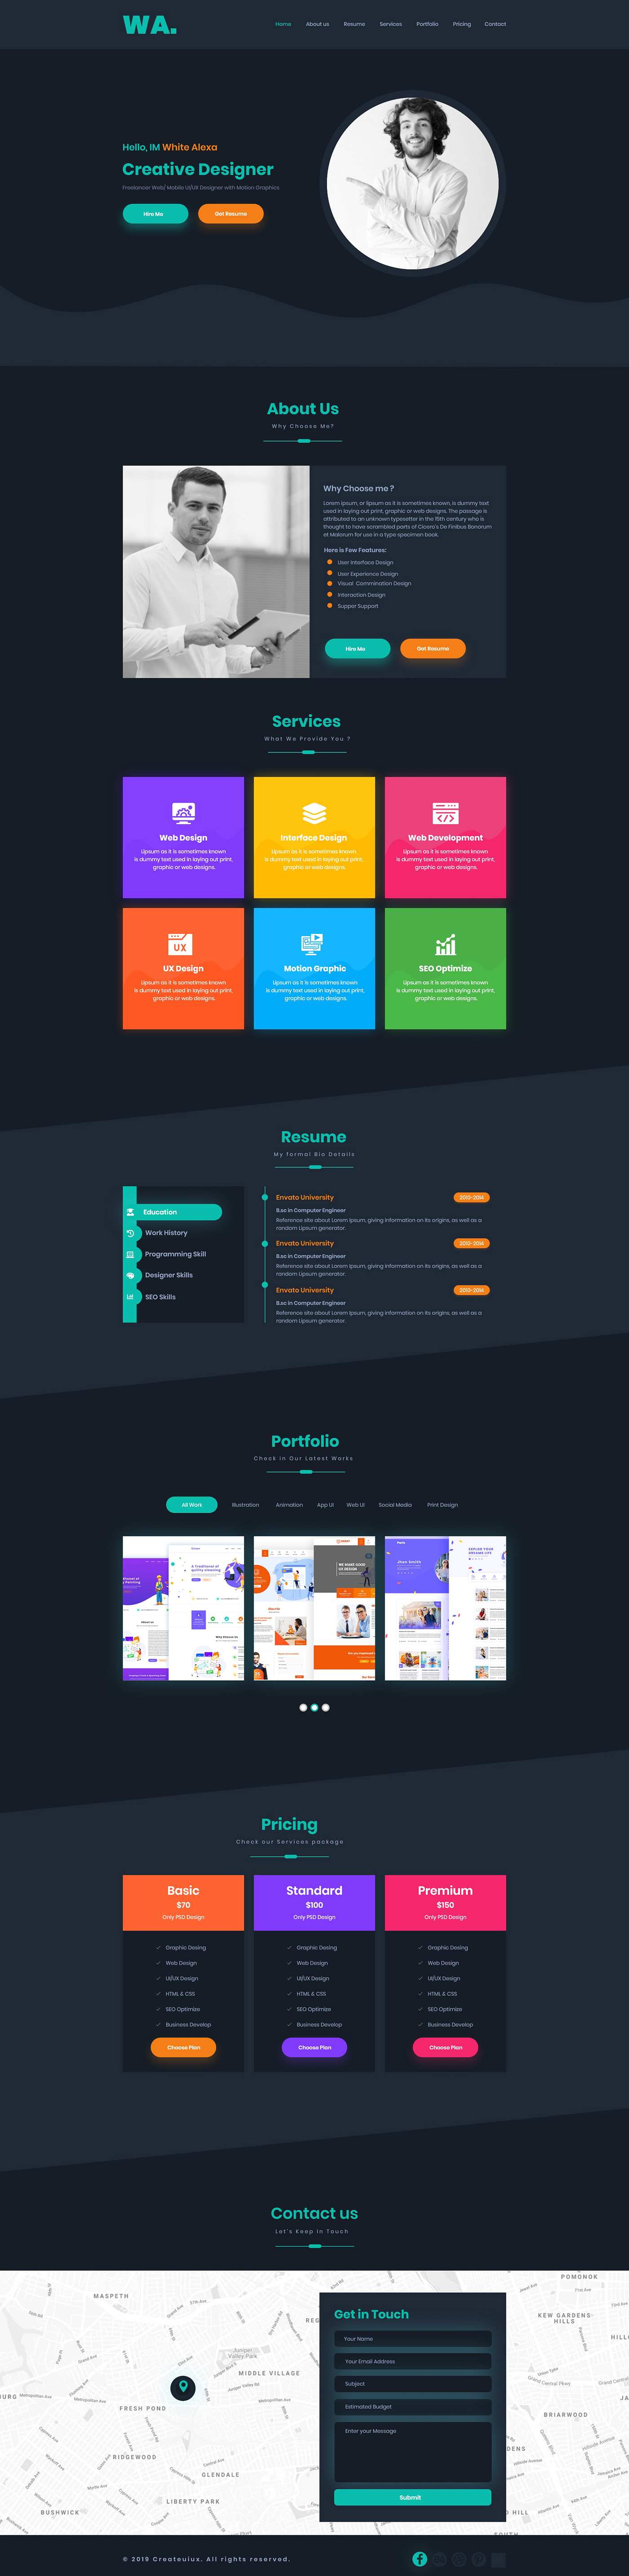 CV CV Template Free download free freebies One Page PS Resume xD